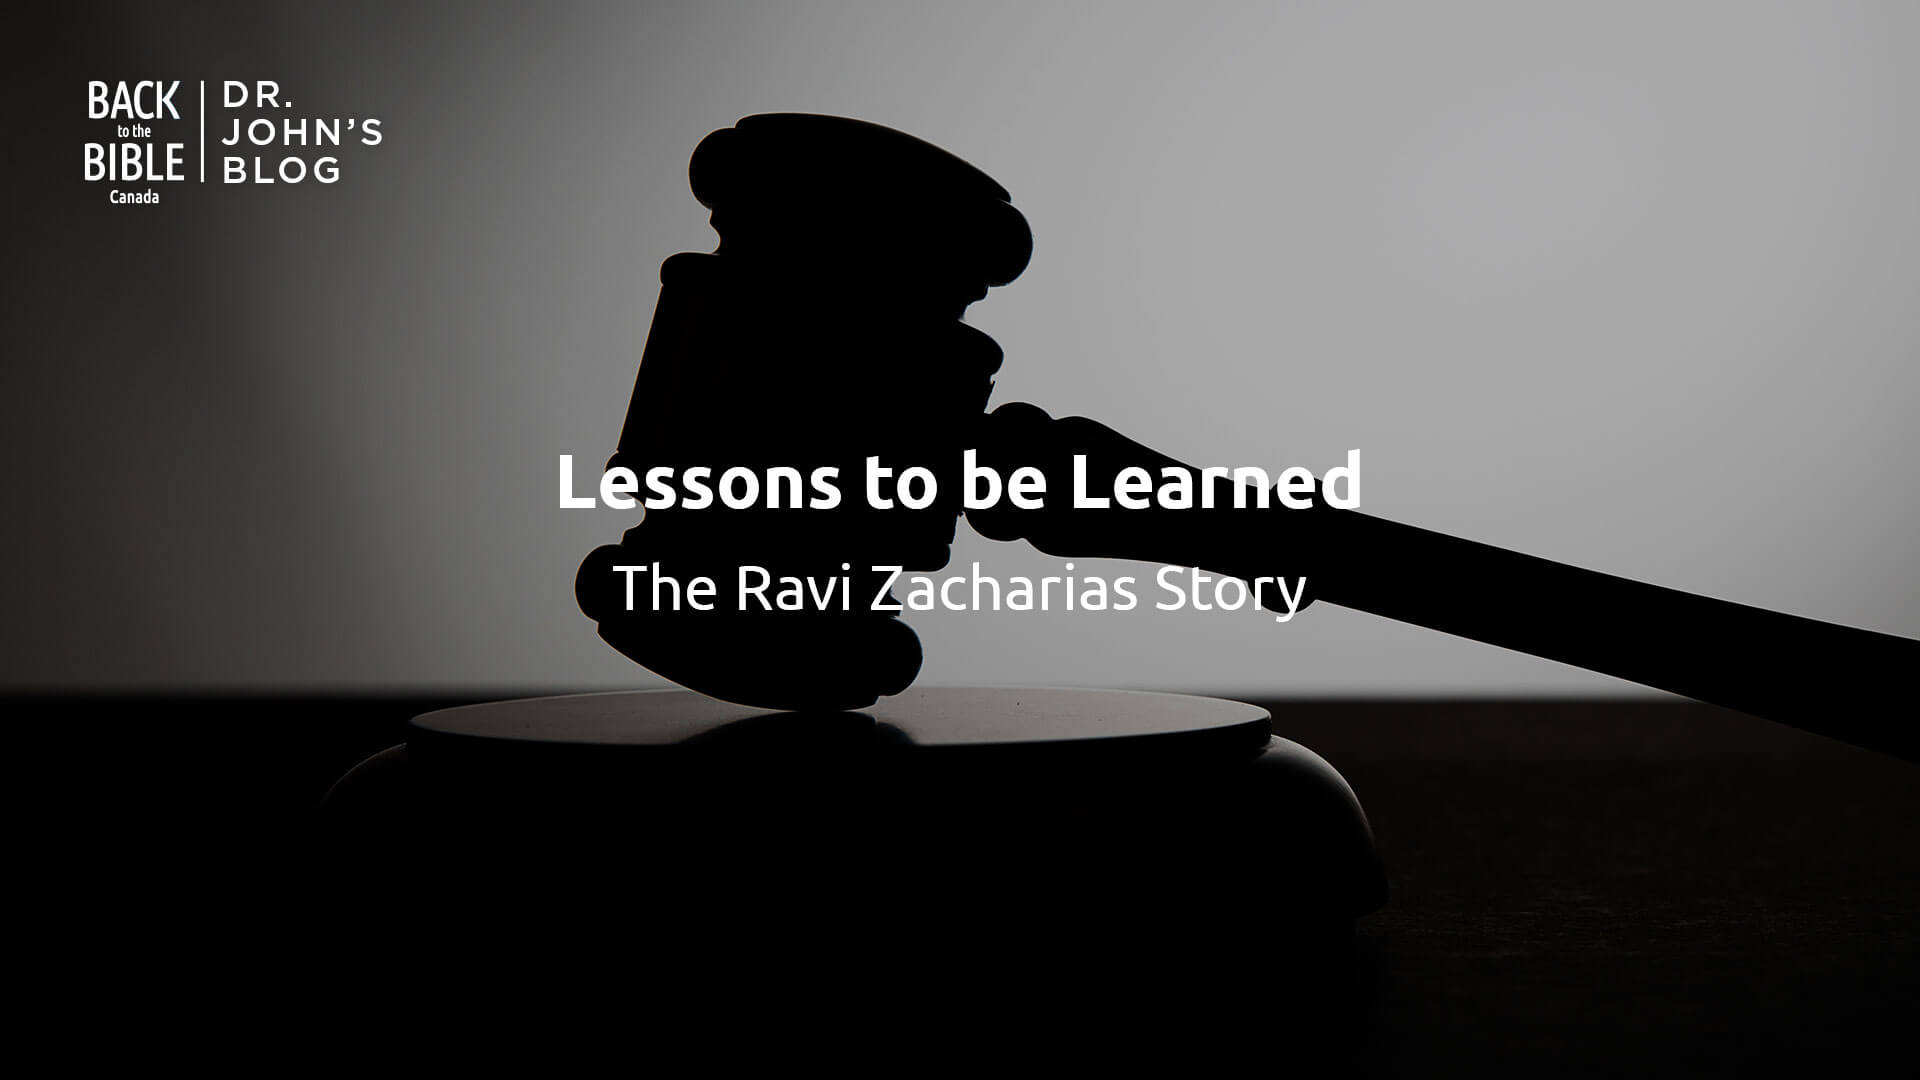 Lessons to be Learned: The Ravi Zacharias Story - Back to the Bible Canada with Dr. John Neufeld